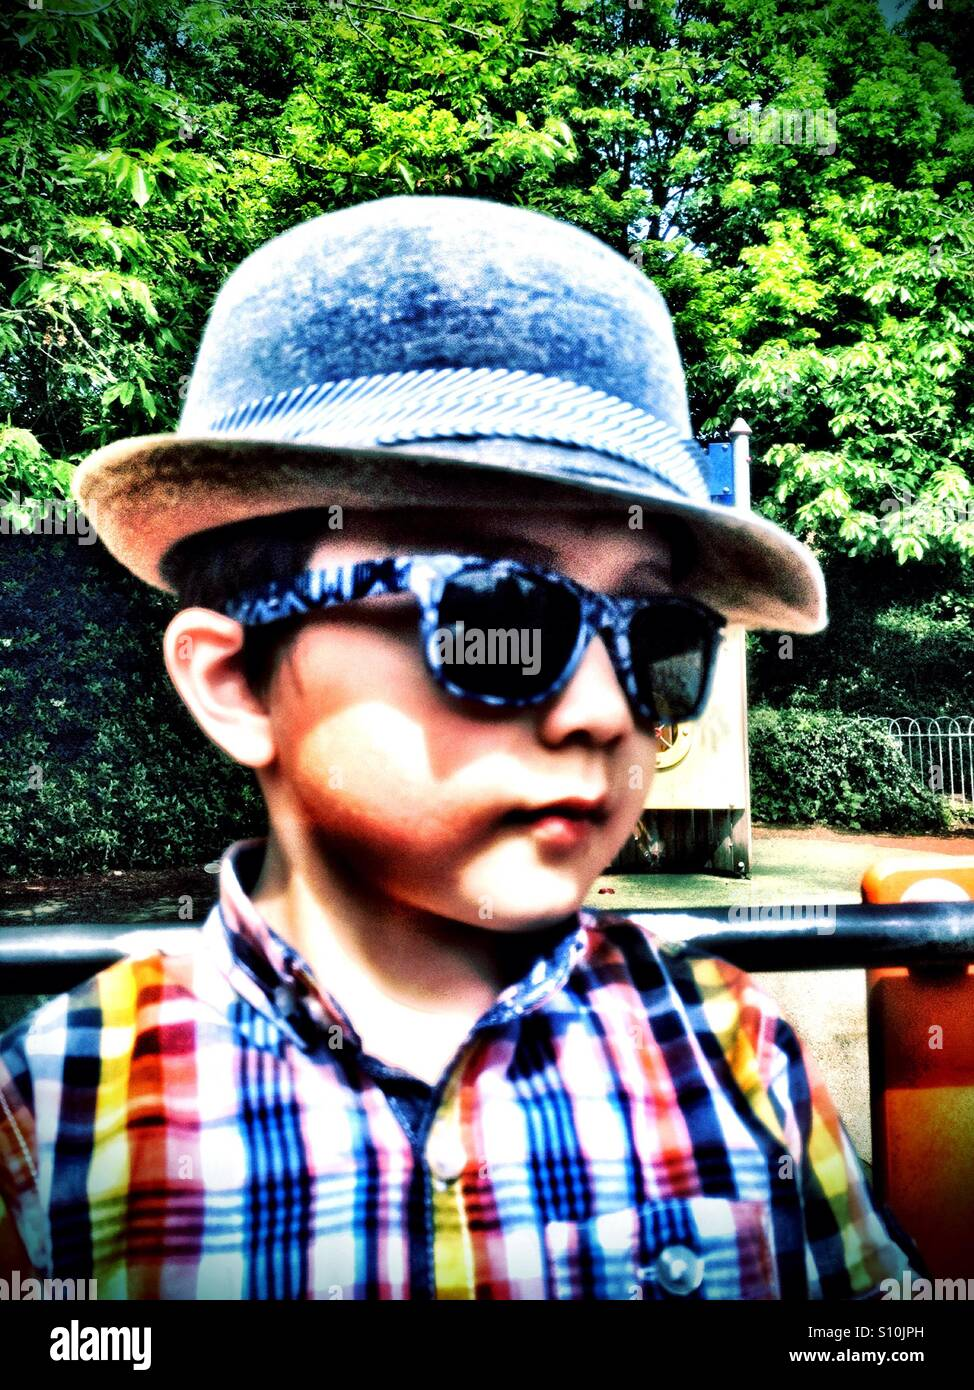 A young boy in the park wearing hat and sunglasses. - Stock Image